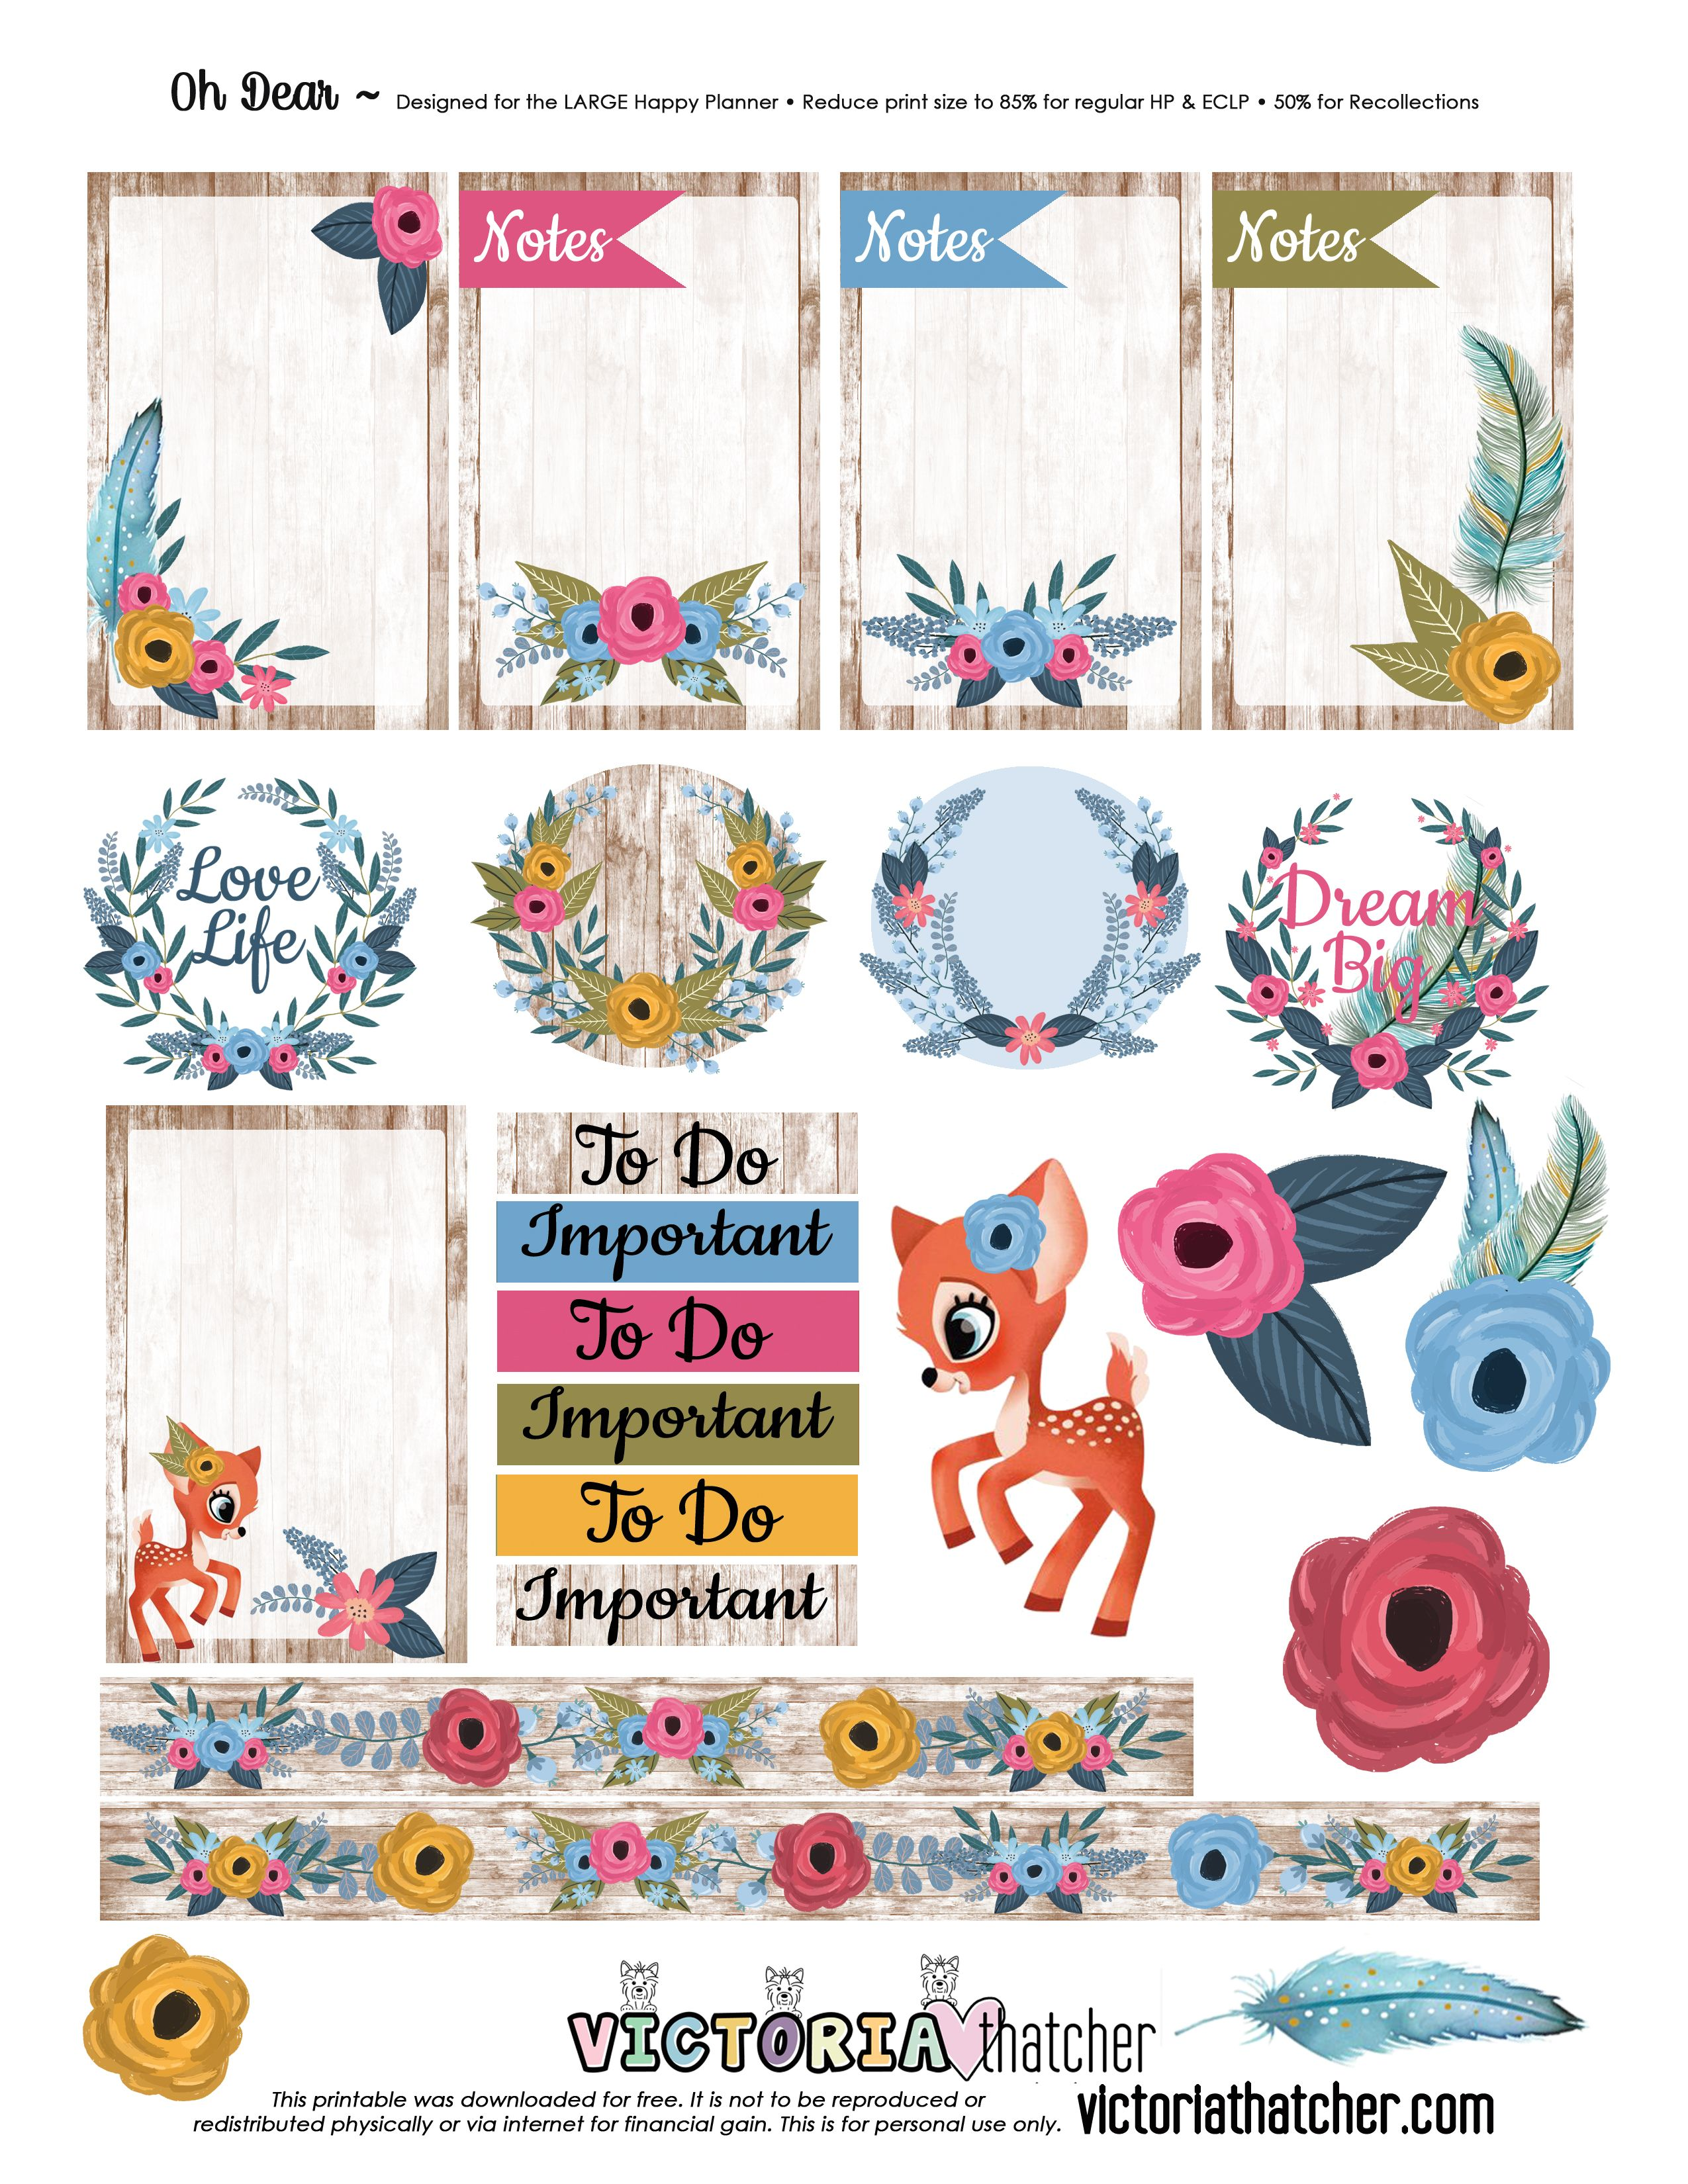 free printable oh dear planner stickers from victoria thatcher